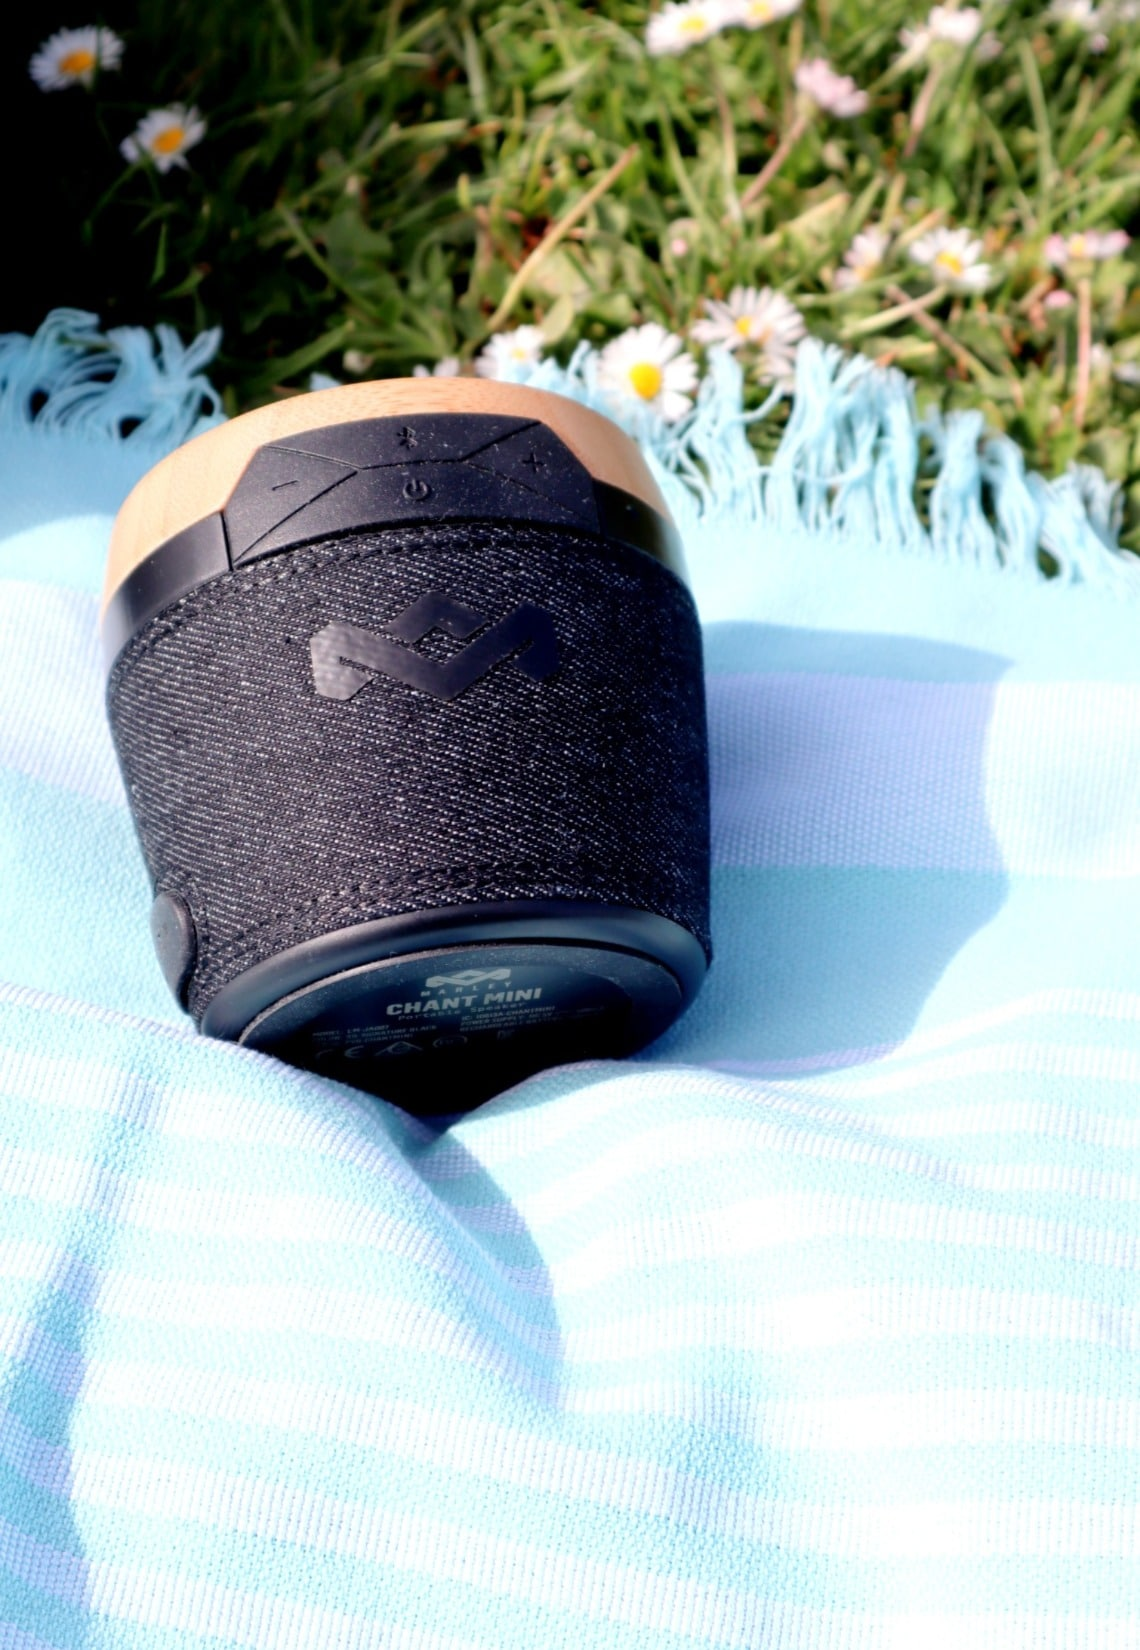 The house of Marley Chant Mini Bluetooth speaker